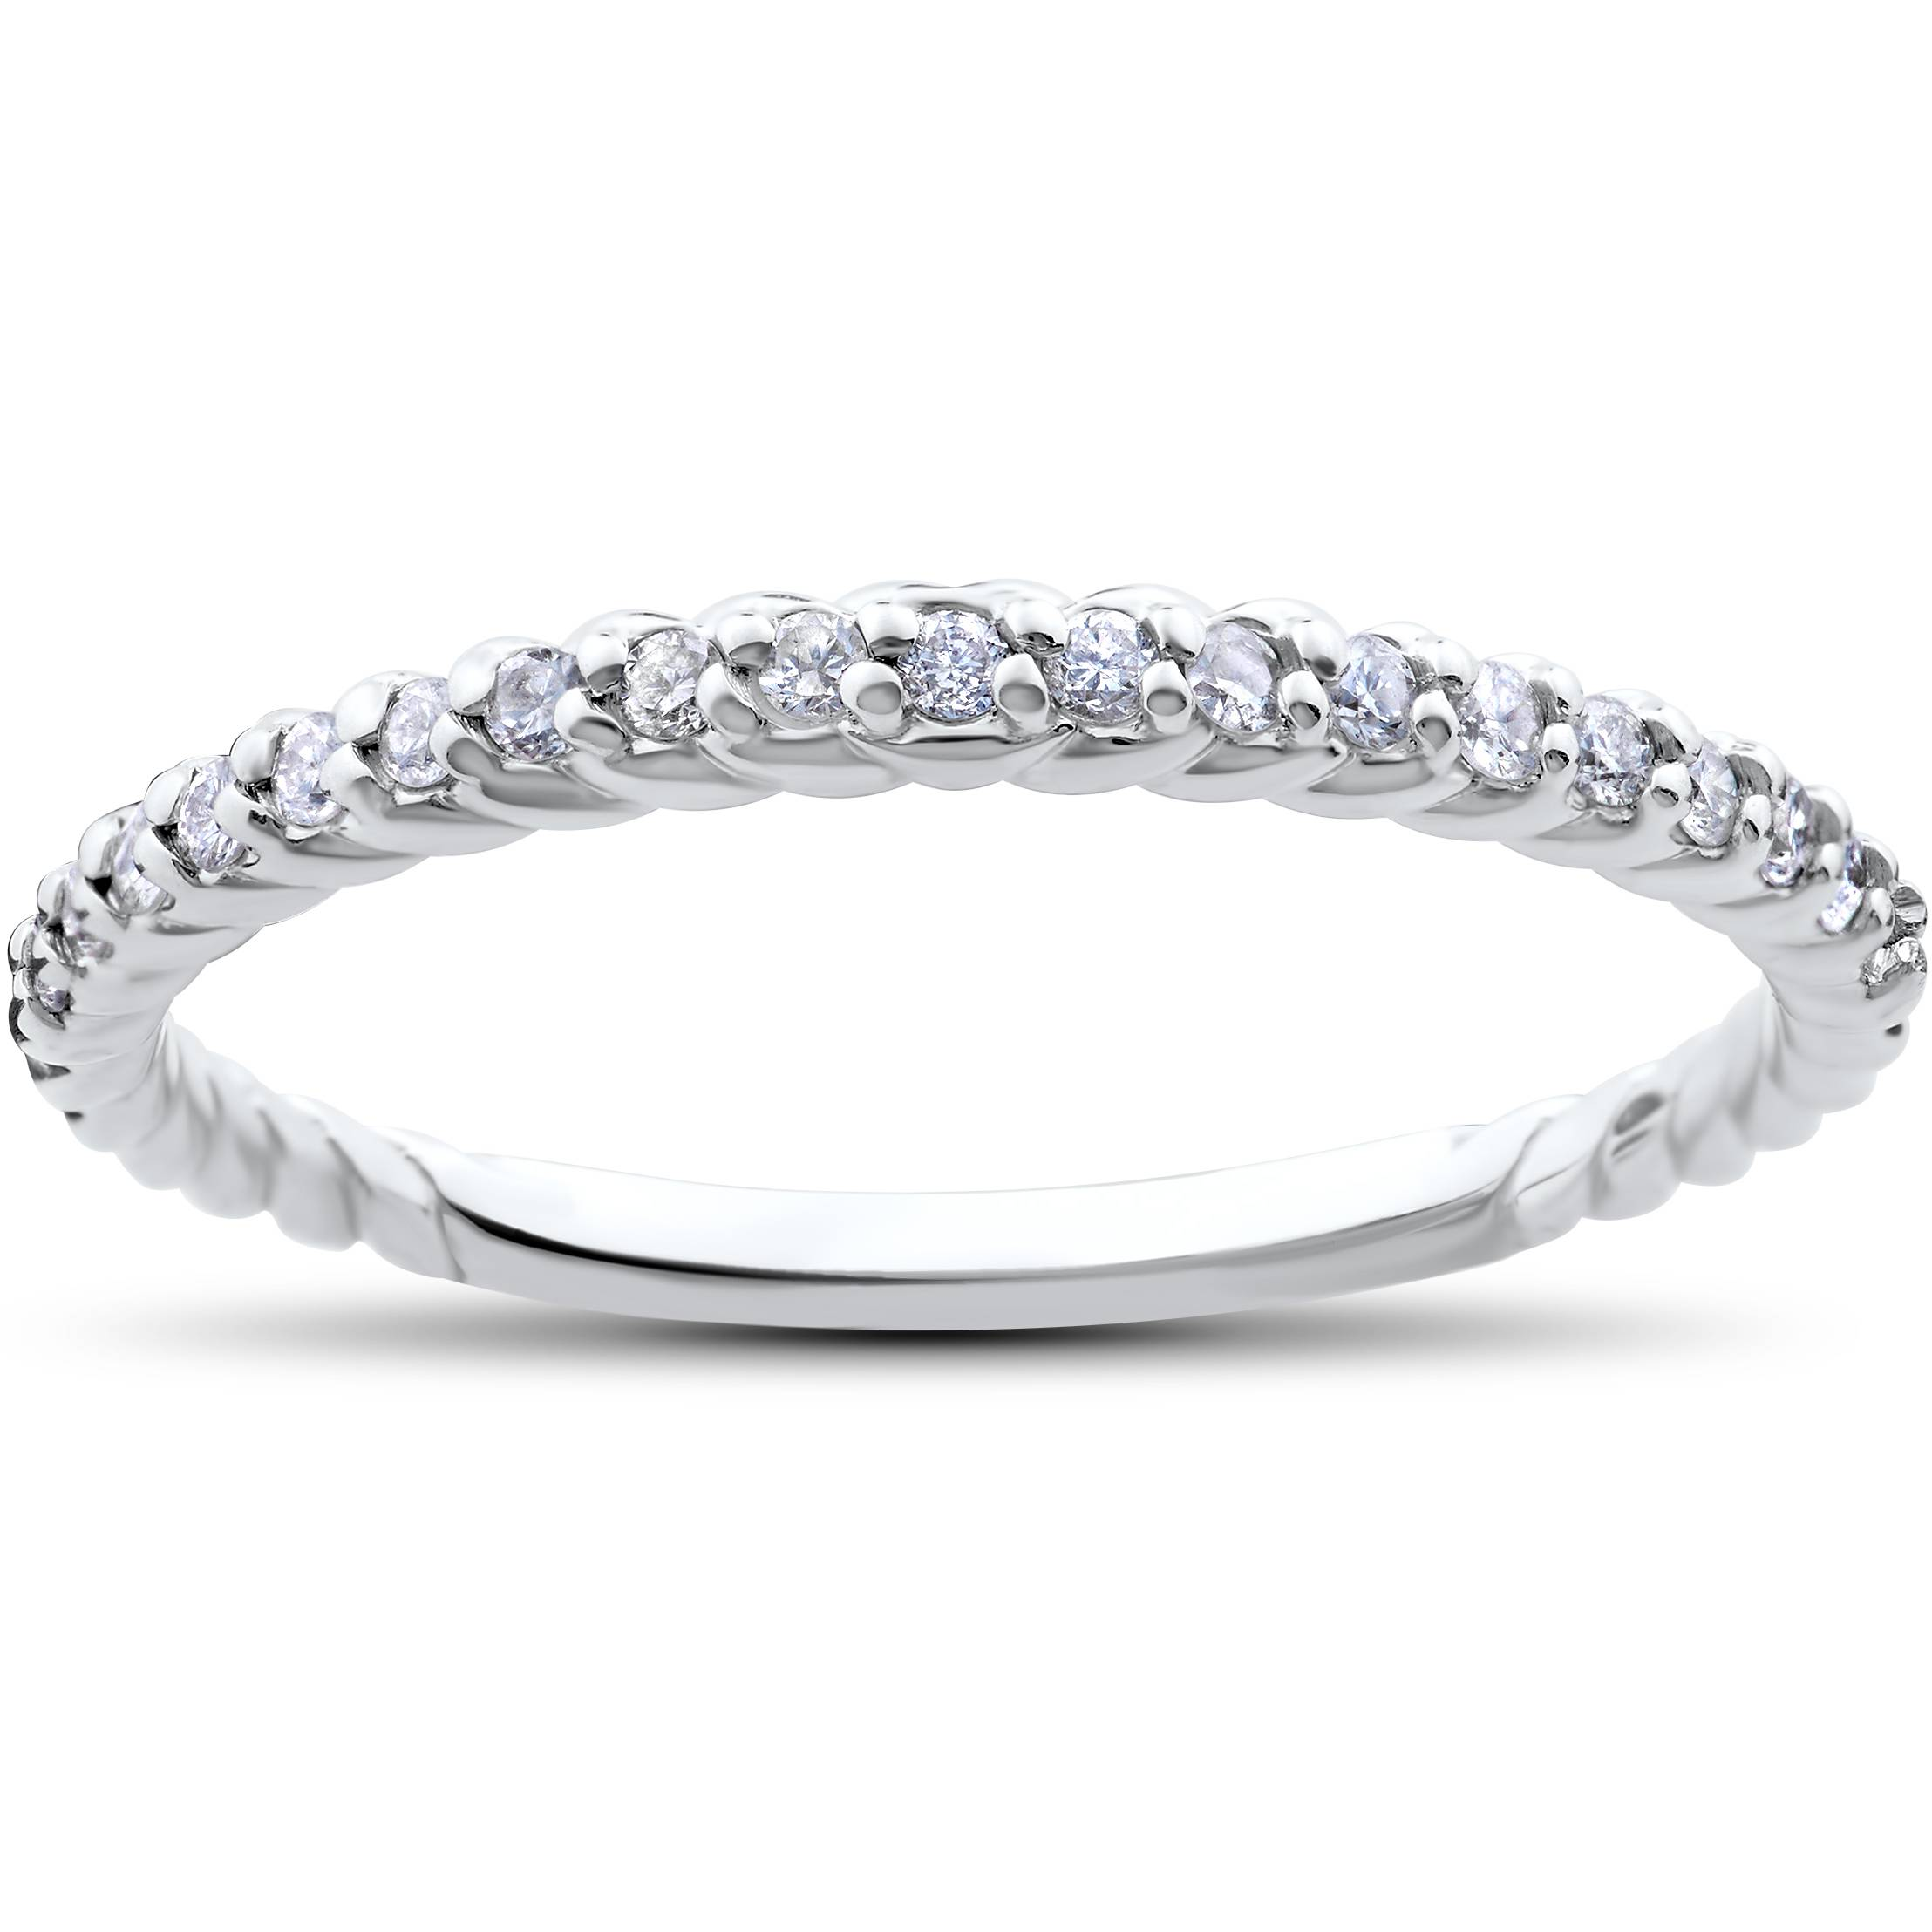 stackable diamond wedding ring 1 4ct braided anniversary band 14k white gold. Black Bedroom Furniture Sets. Home Design Ideas